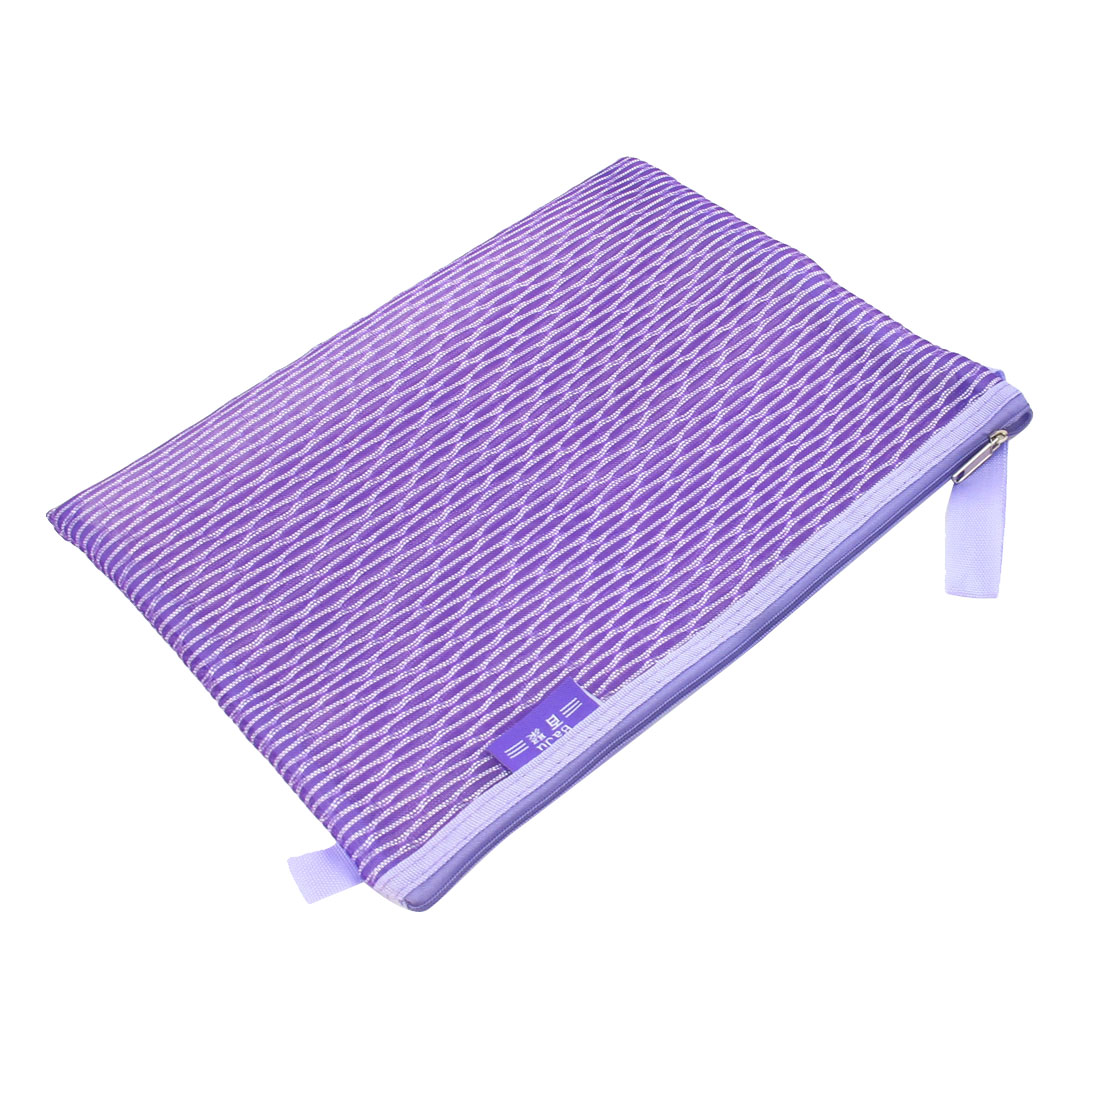 PVC Gridding Zipper Closure A4 Paper File Bag Office Document Holder Purple